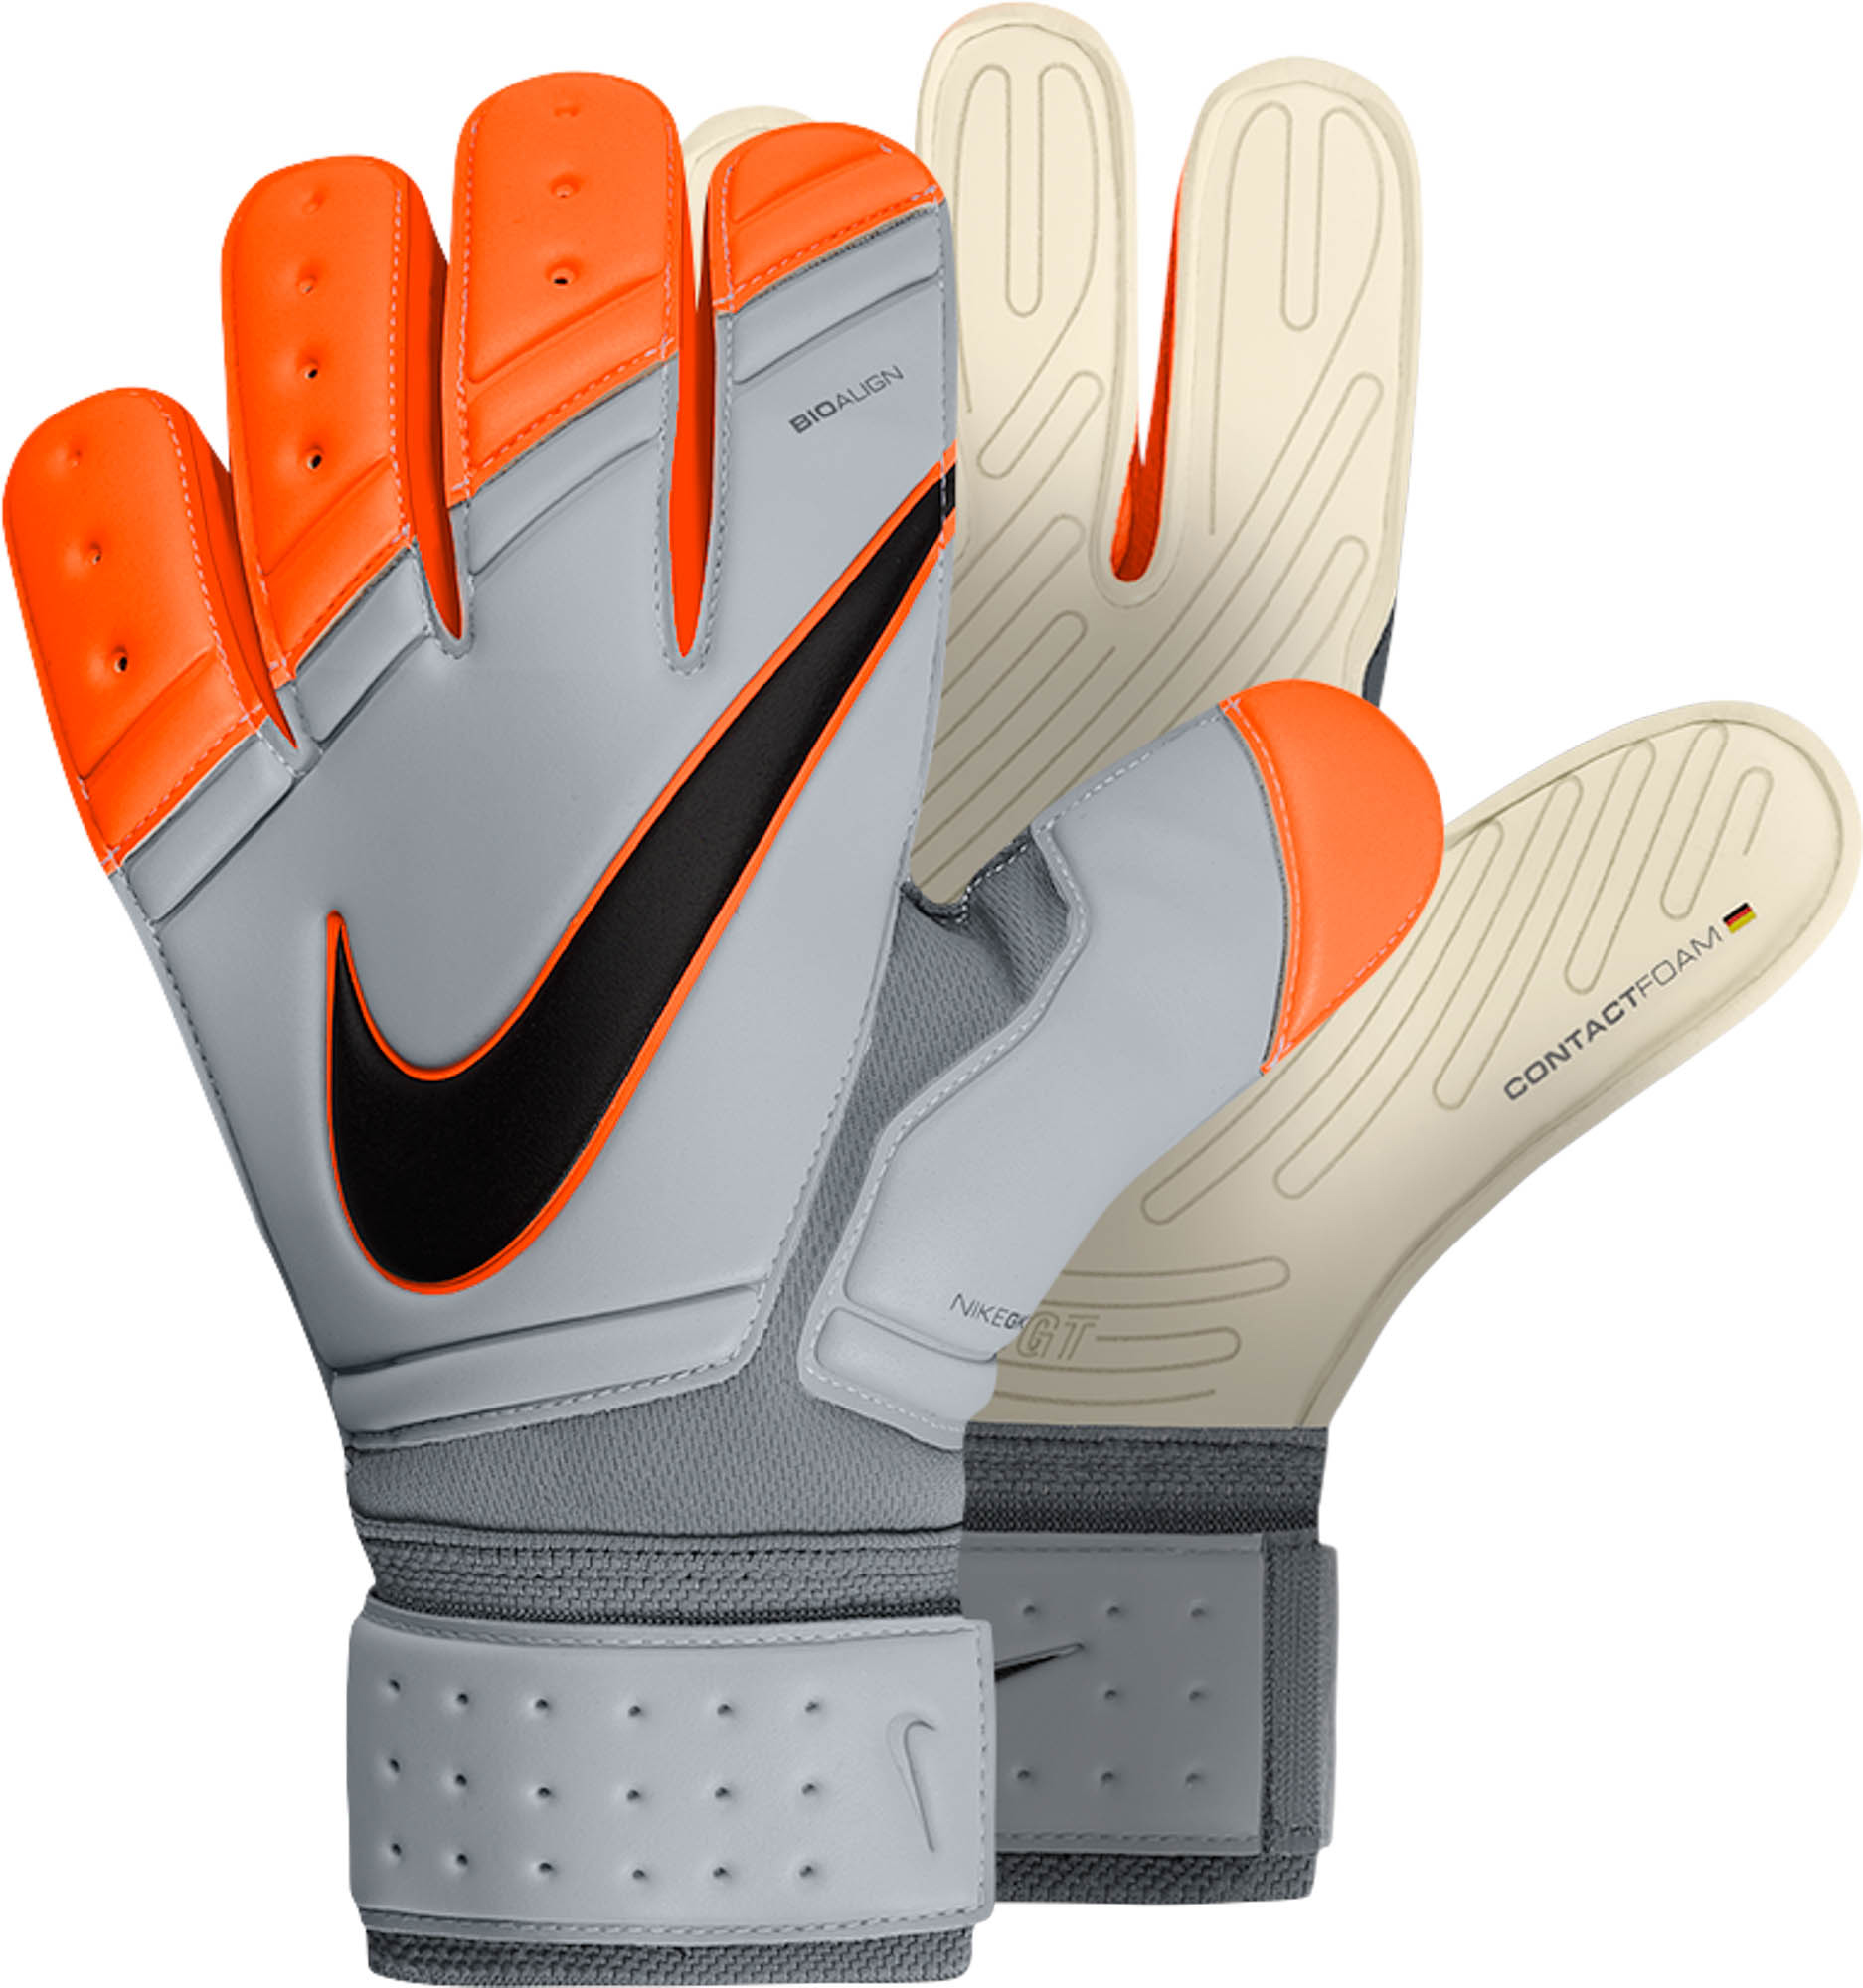 Nike Soccer Gloves: White Nike Goalkeeper Gear